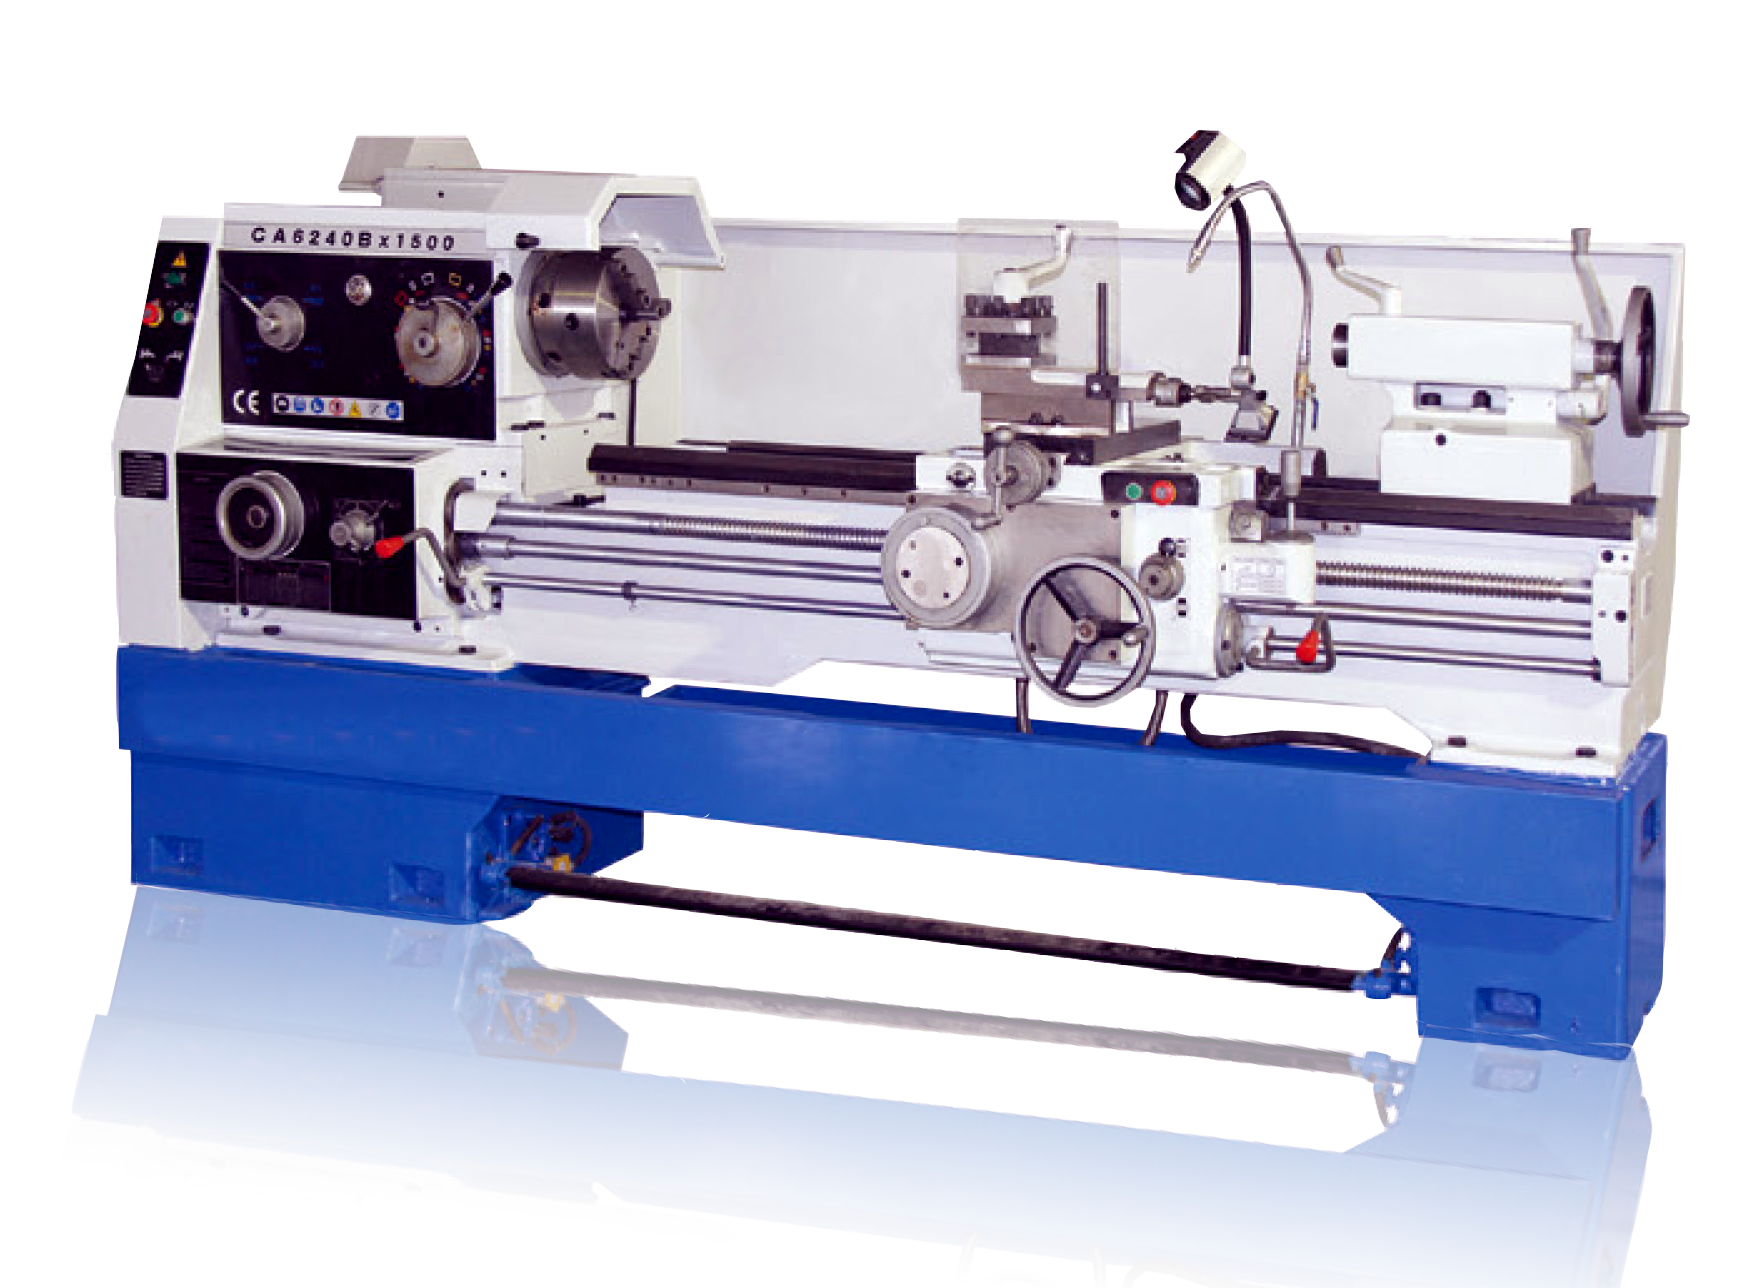 Lathe Machine Series Dishaa Machinery Tools Llc